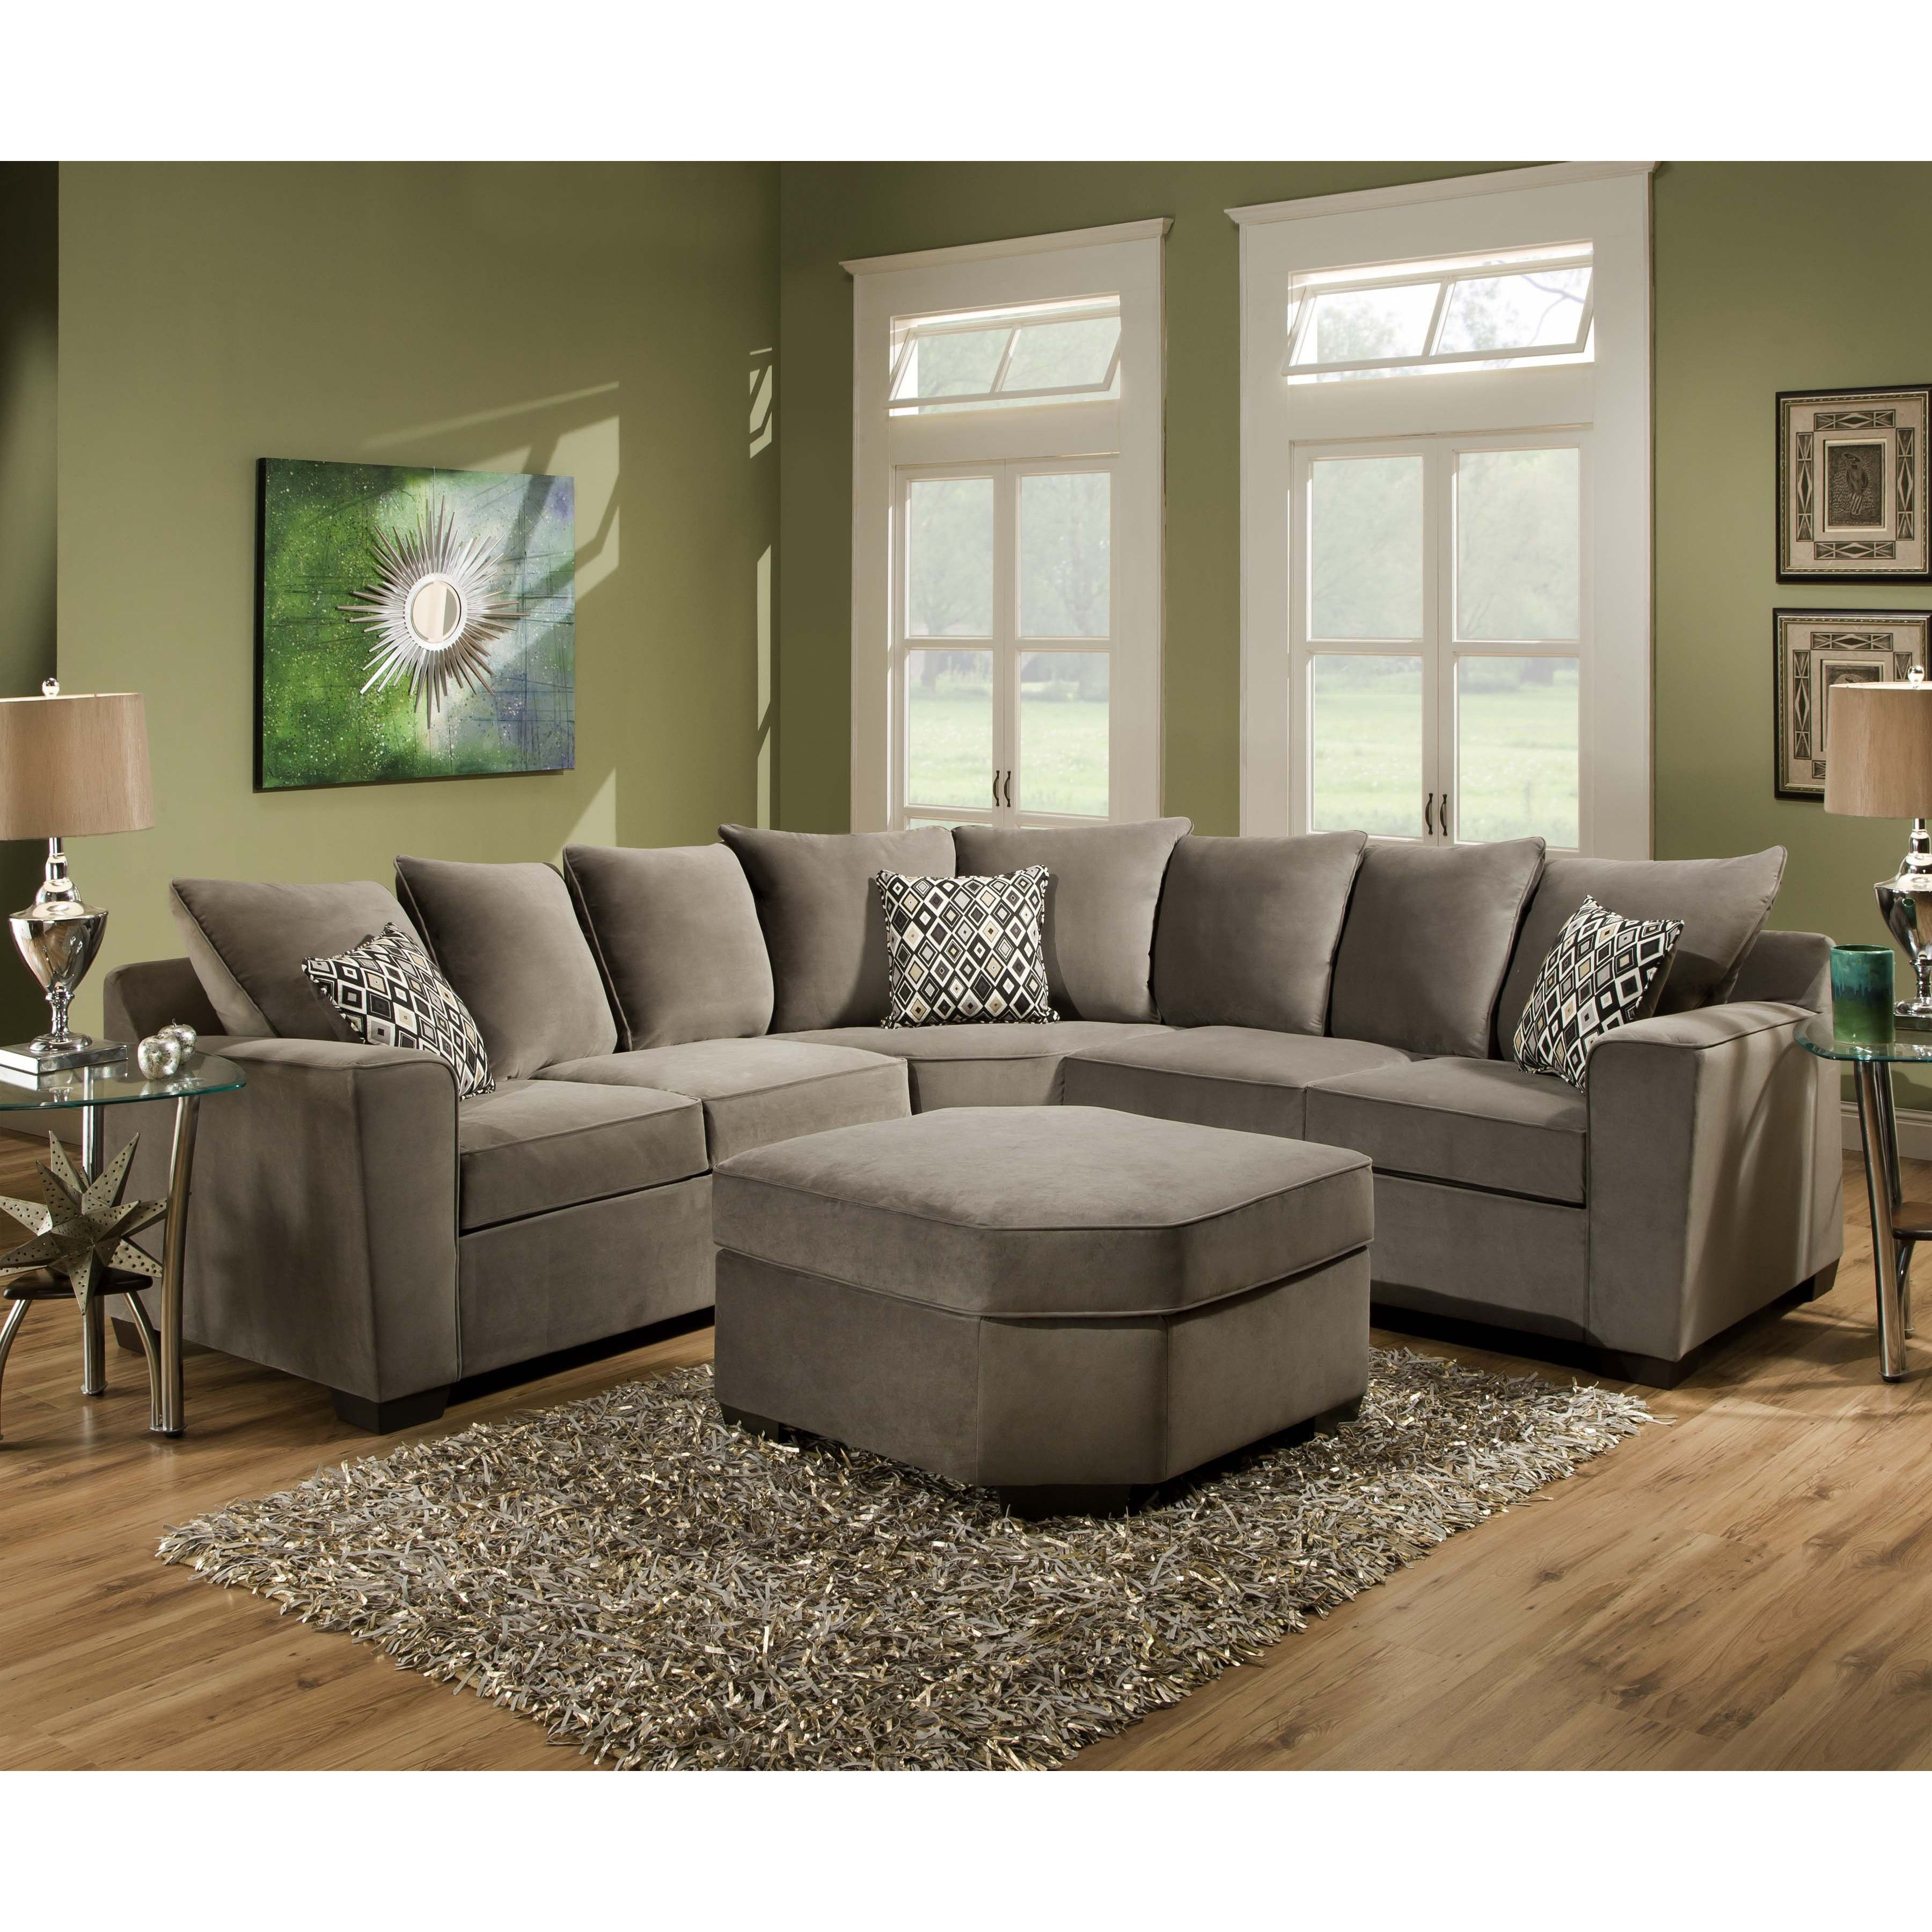 Best Awesome Wayfair Sectional Sofa Amazing Wayfair Sectional 640 x 480